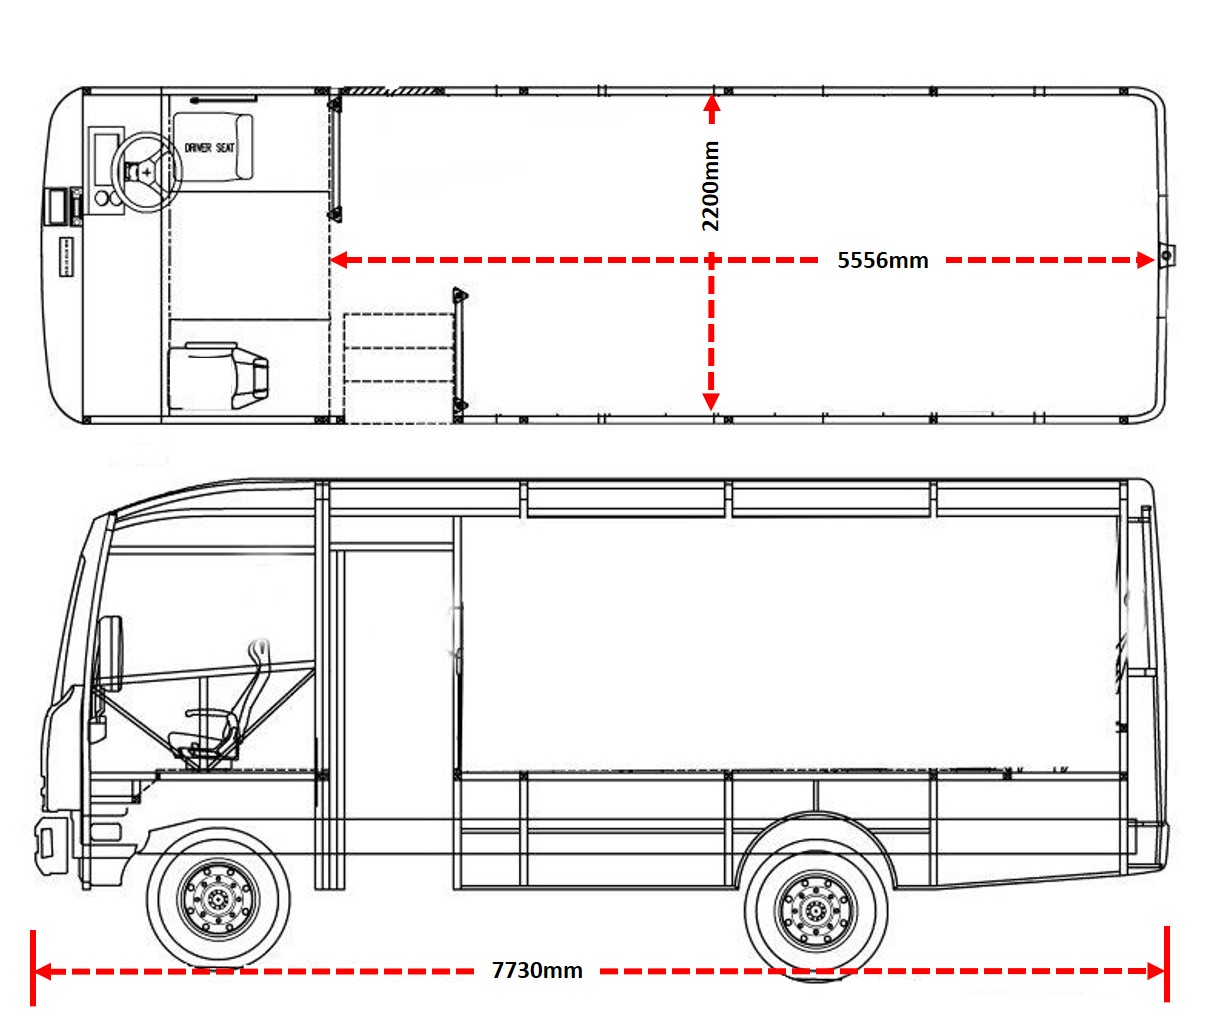 Bus Motorhome Layouts With Model Type